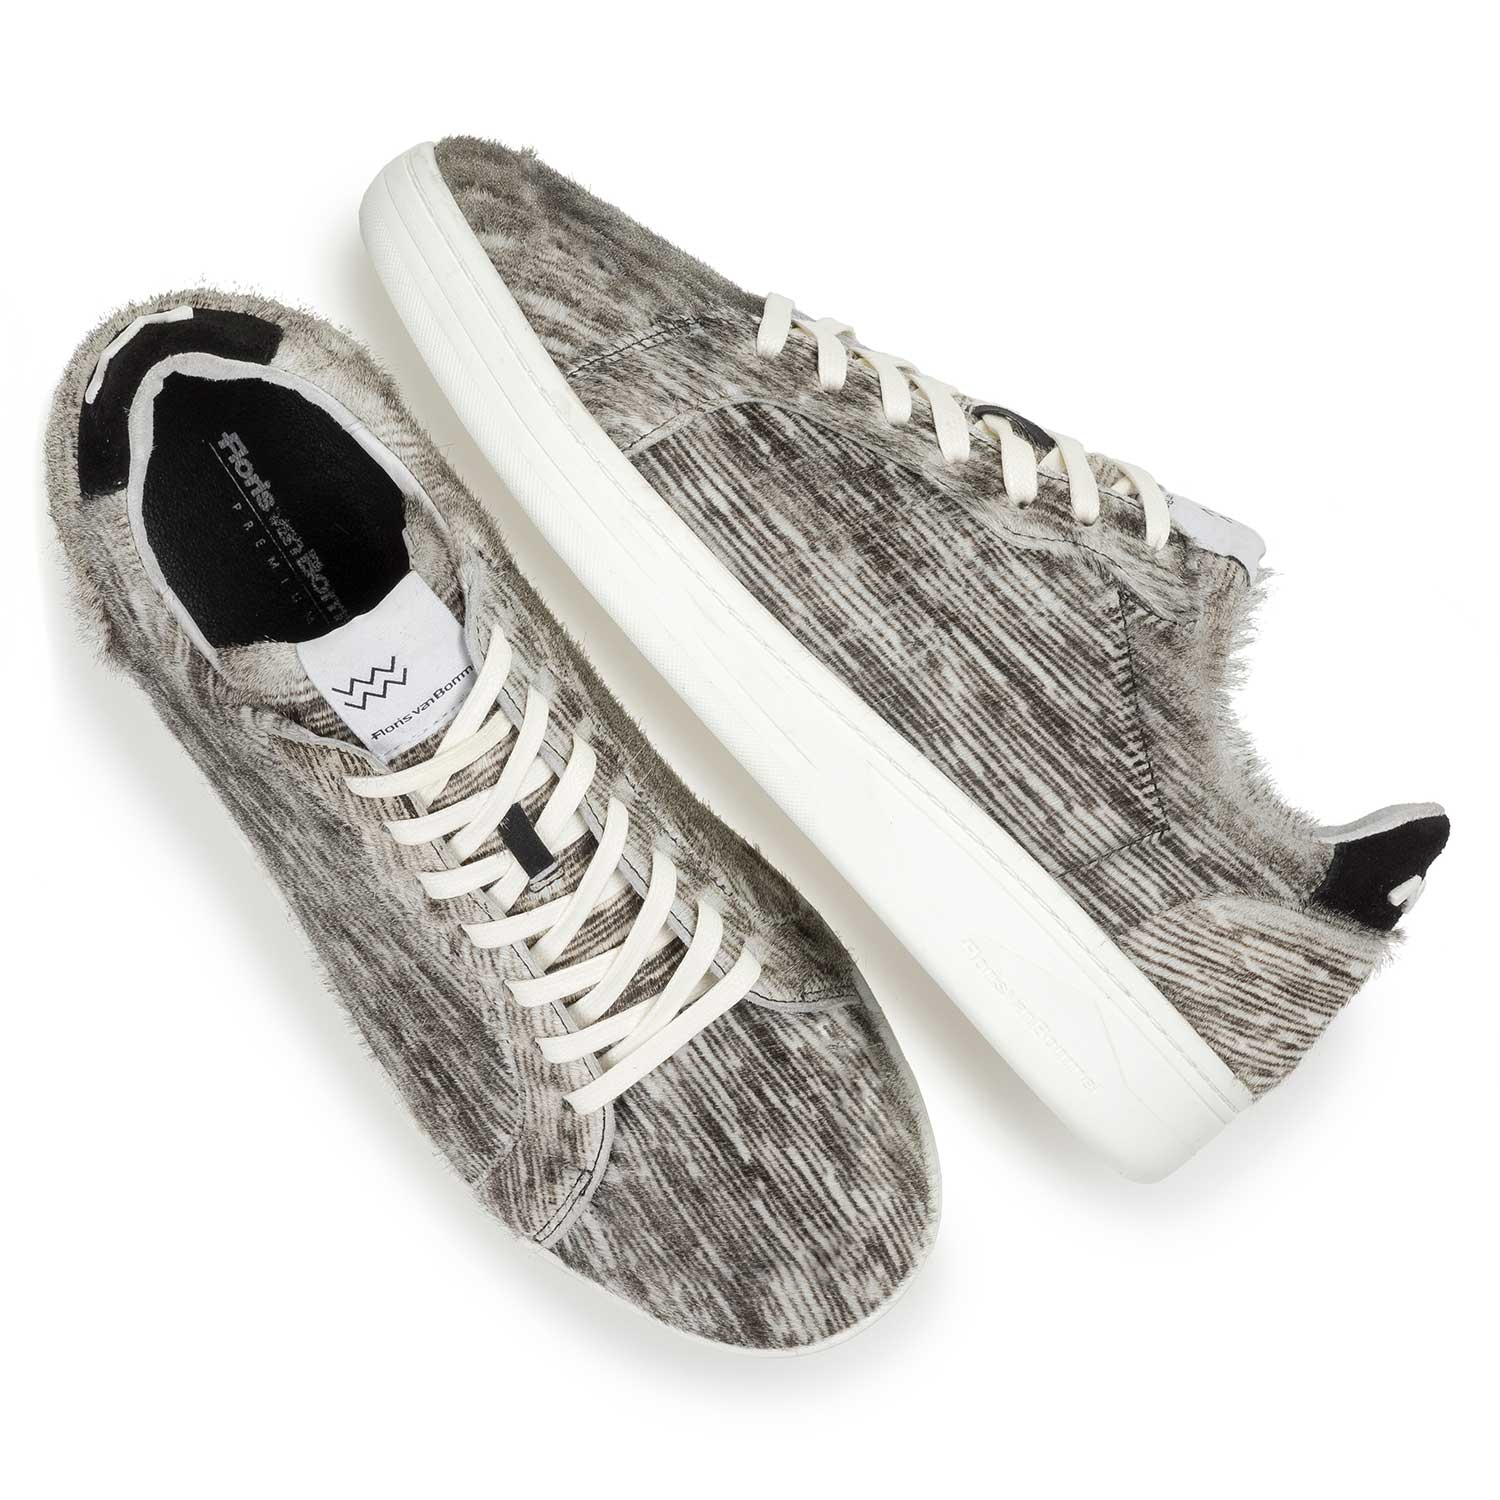 13256/00 - Premium off-white pony hair sneaker with striped pattern